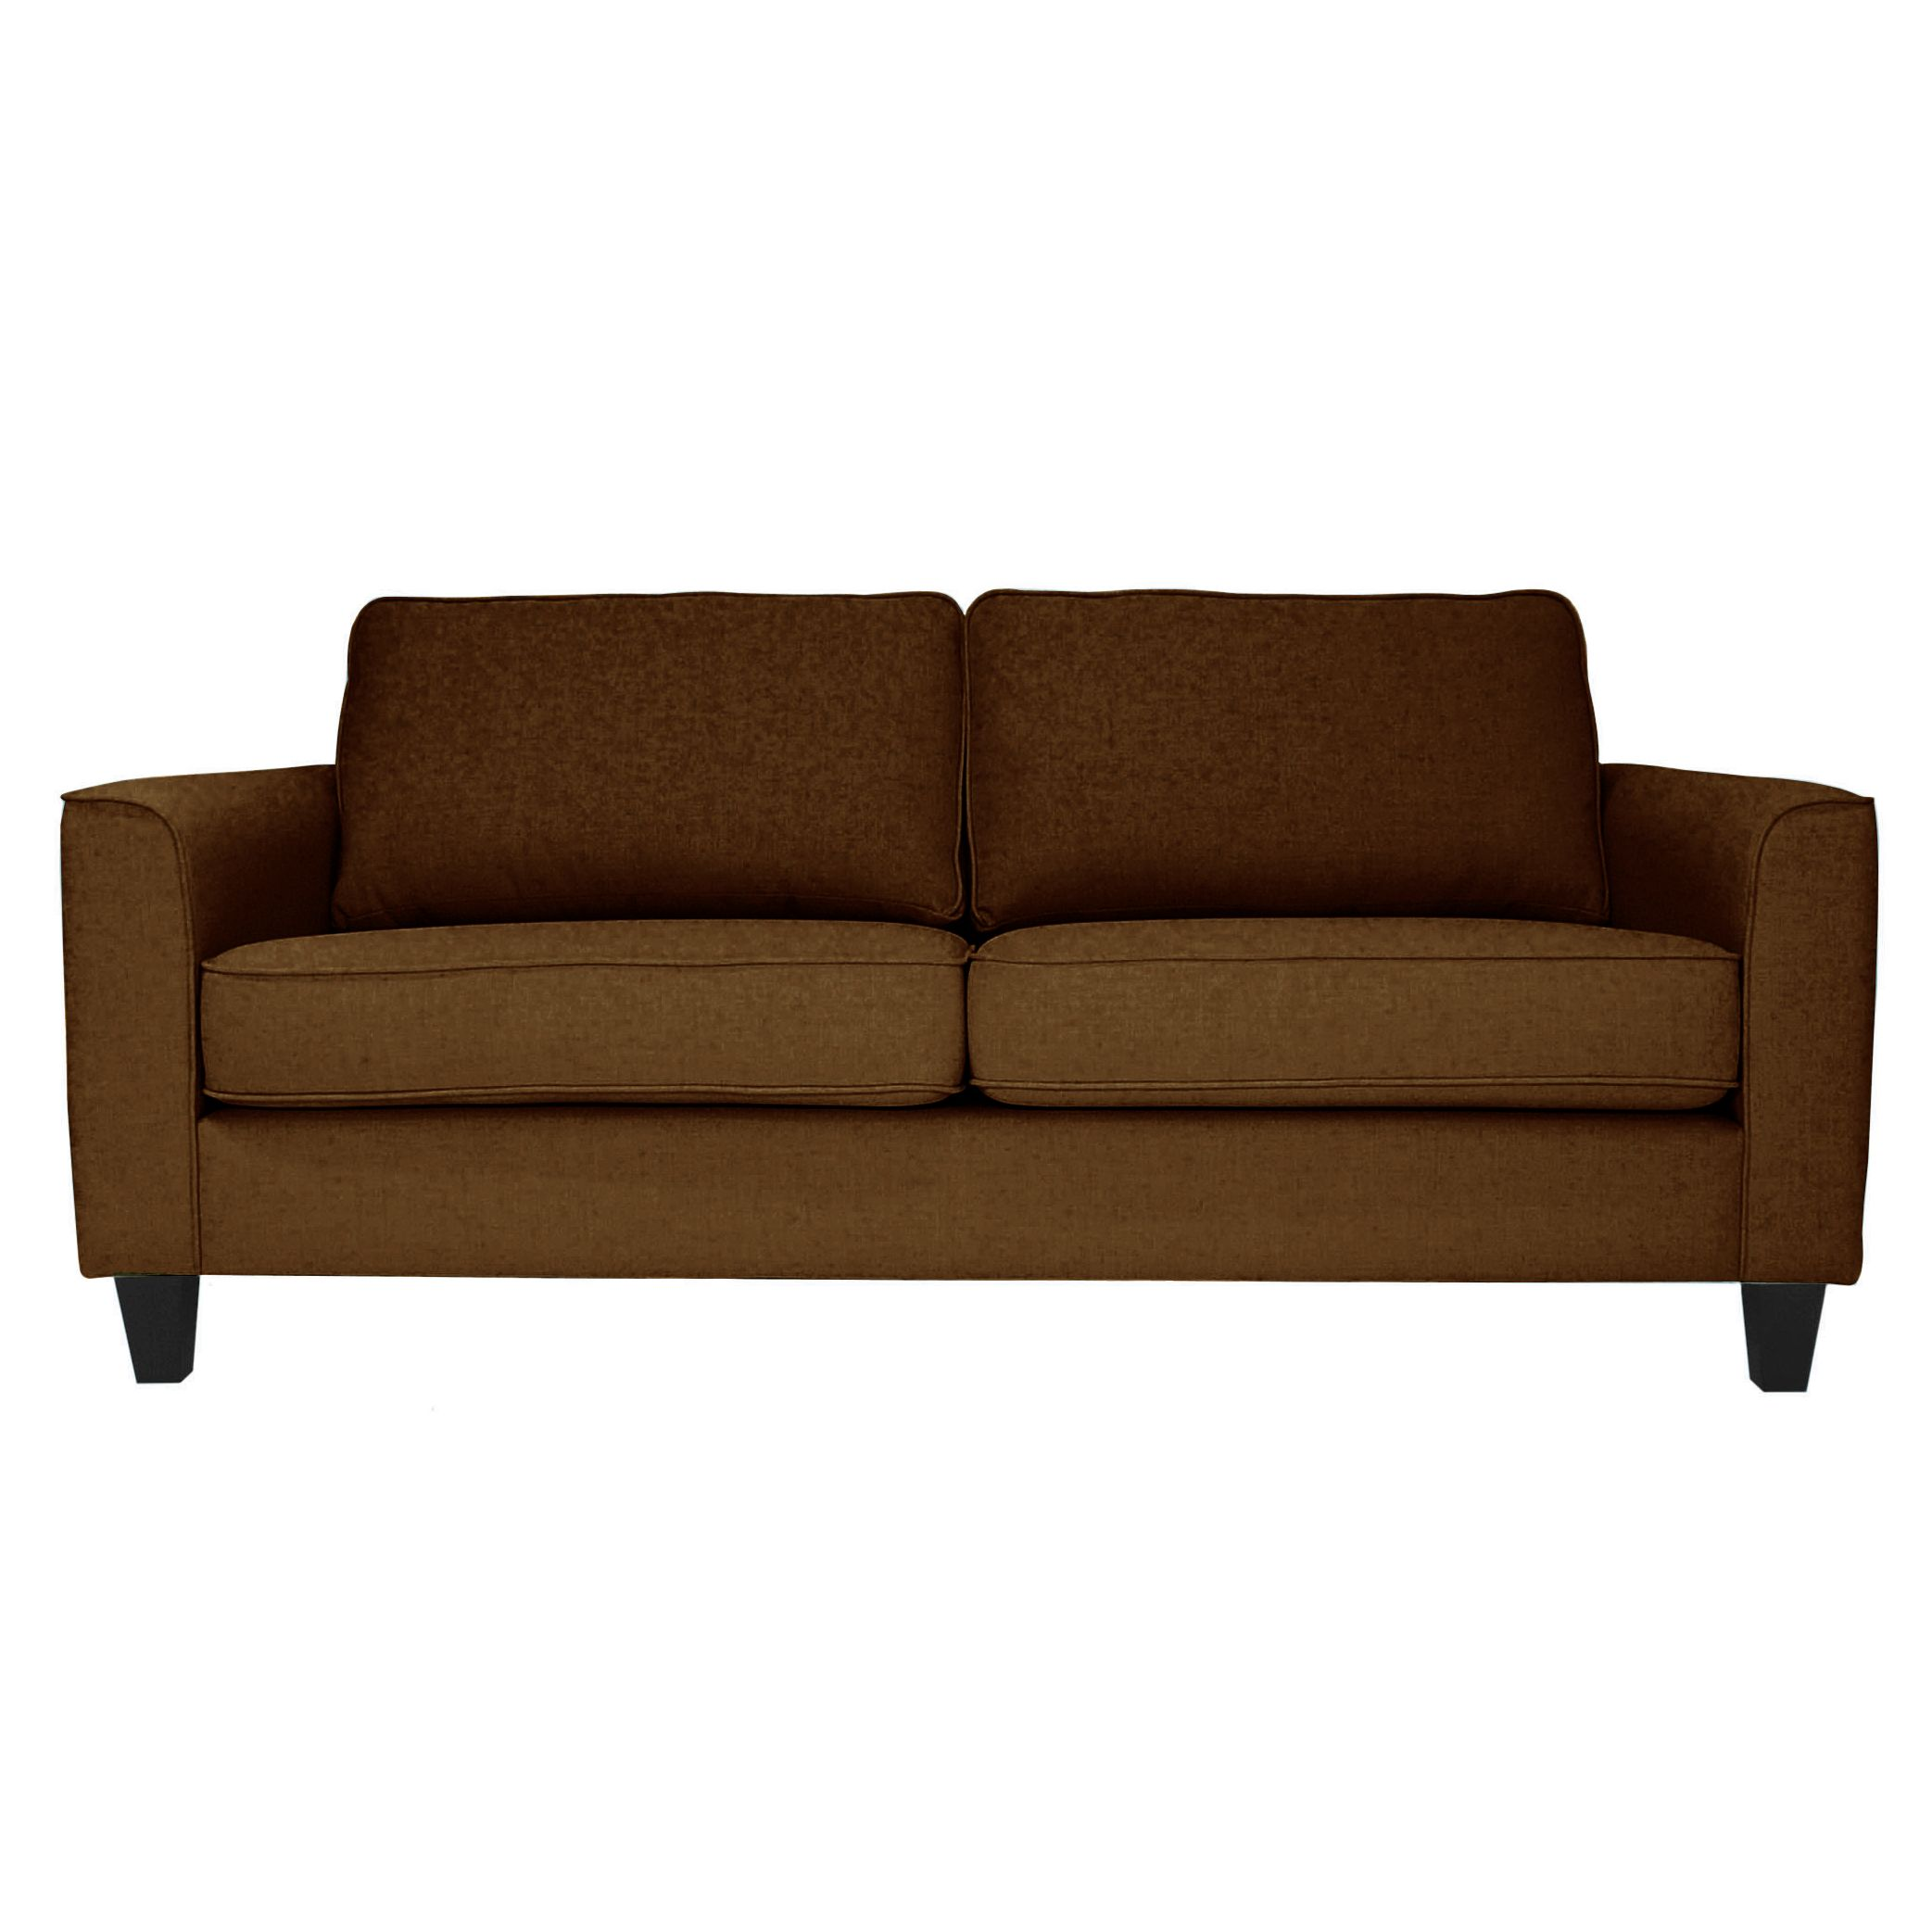 John lewis sofa beds for Sofa bed john lewis